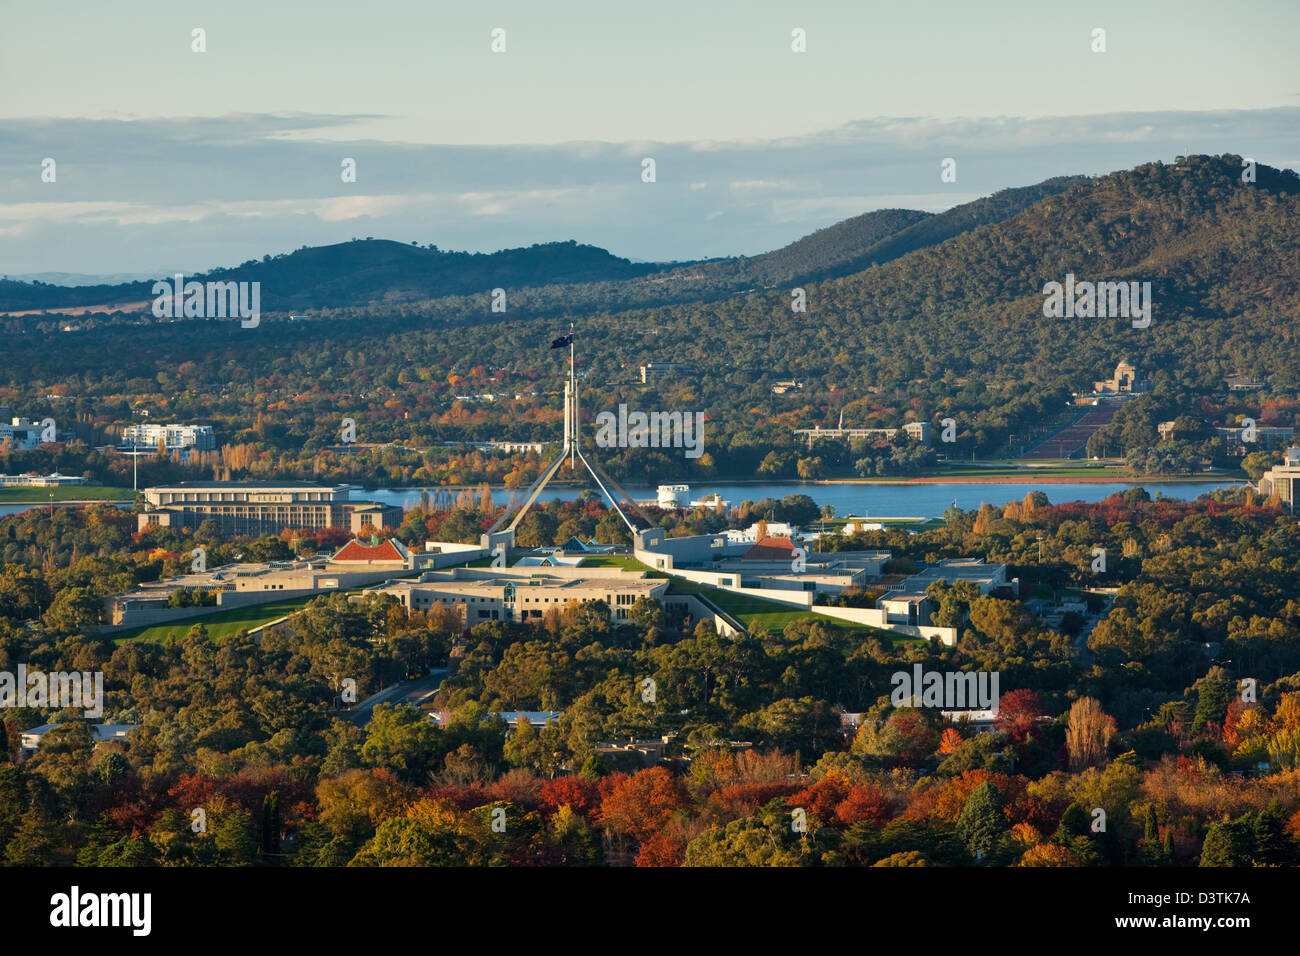 View of Parliament and city skyline from Red Hill lookout. Canberra, Australian Capital Territory (ACT), Australia - Stock Image